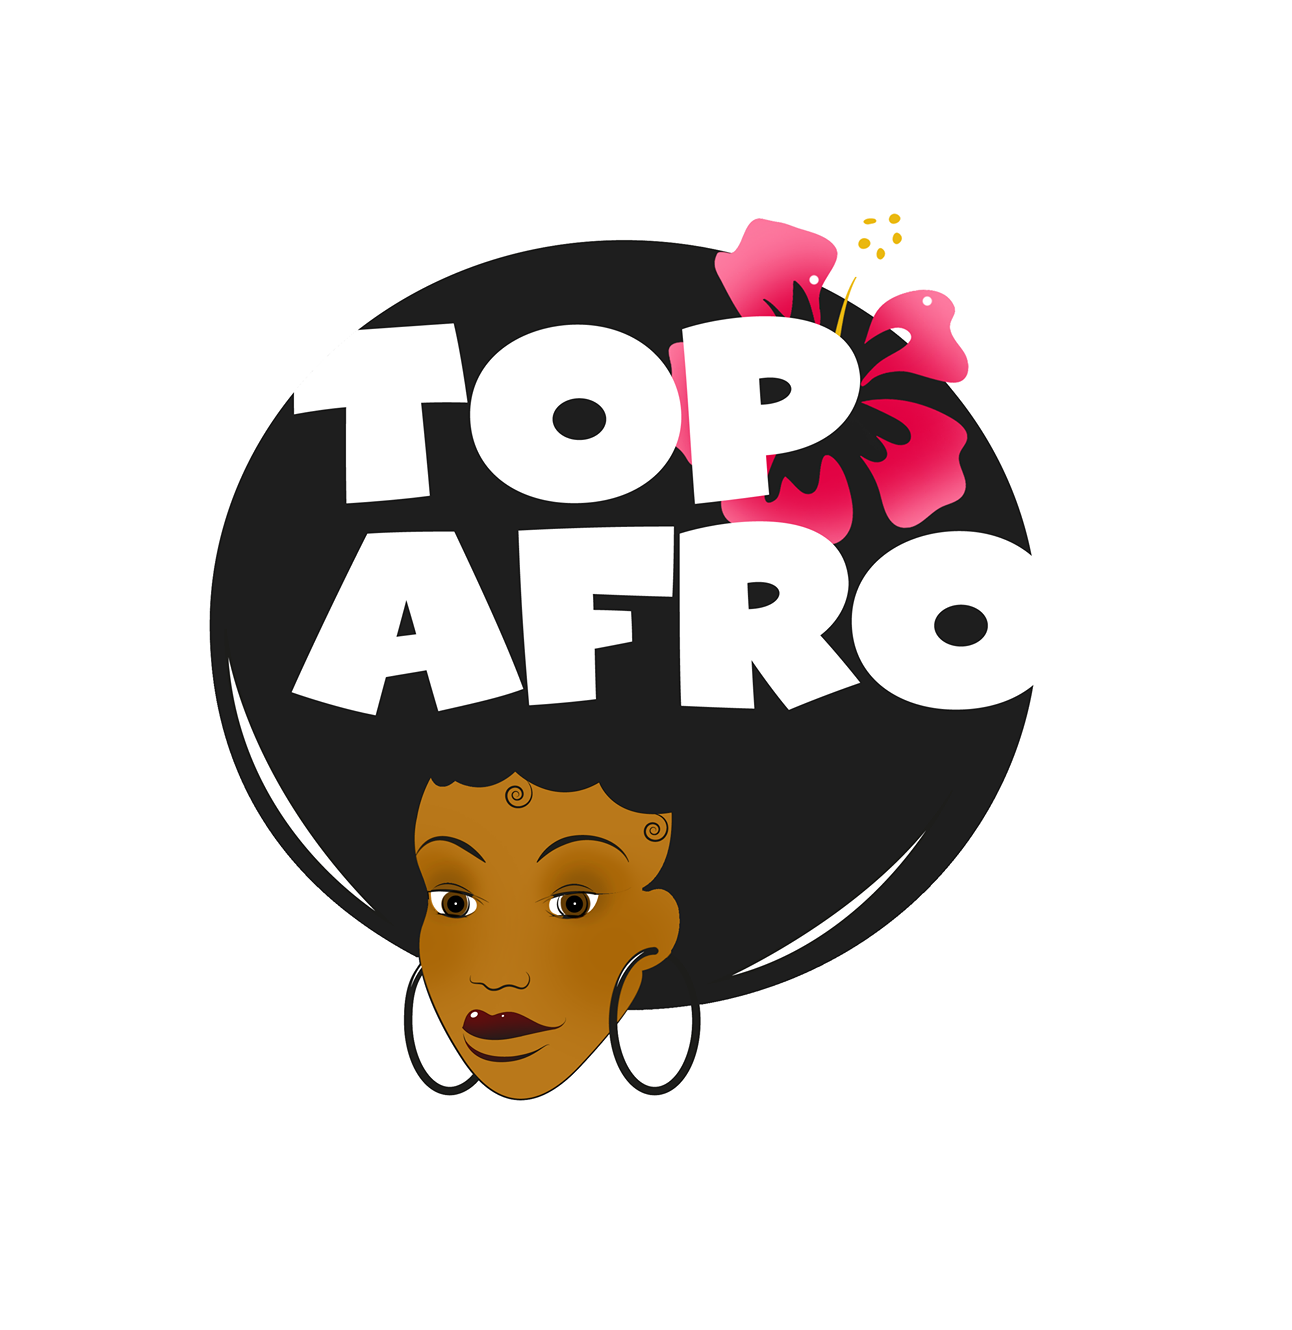 Topafro